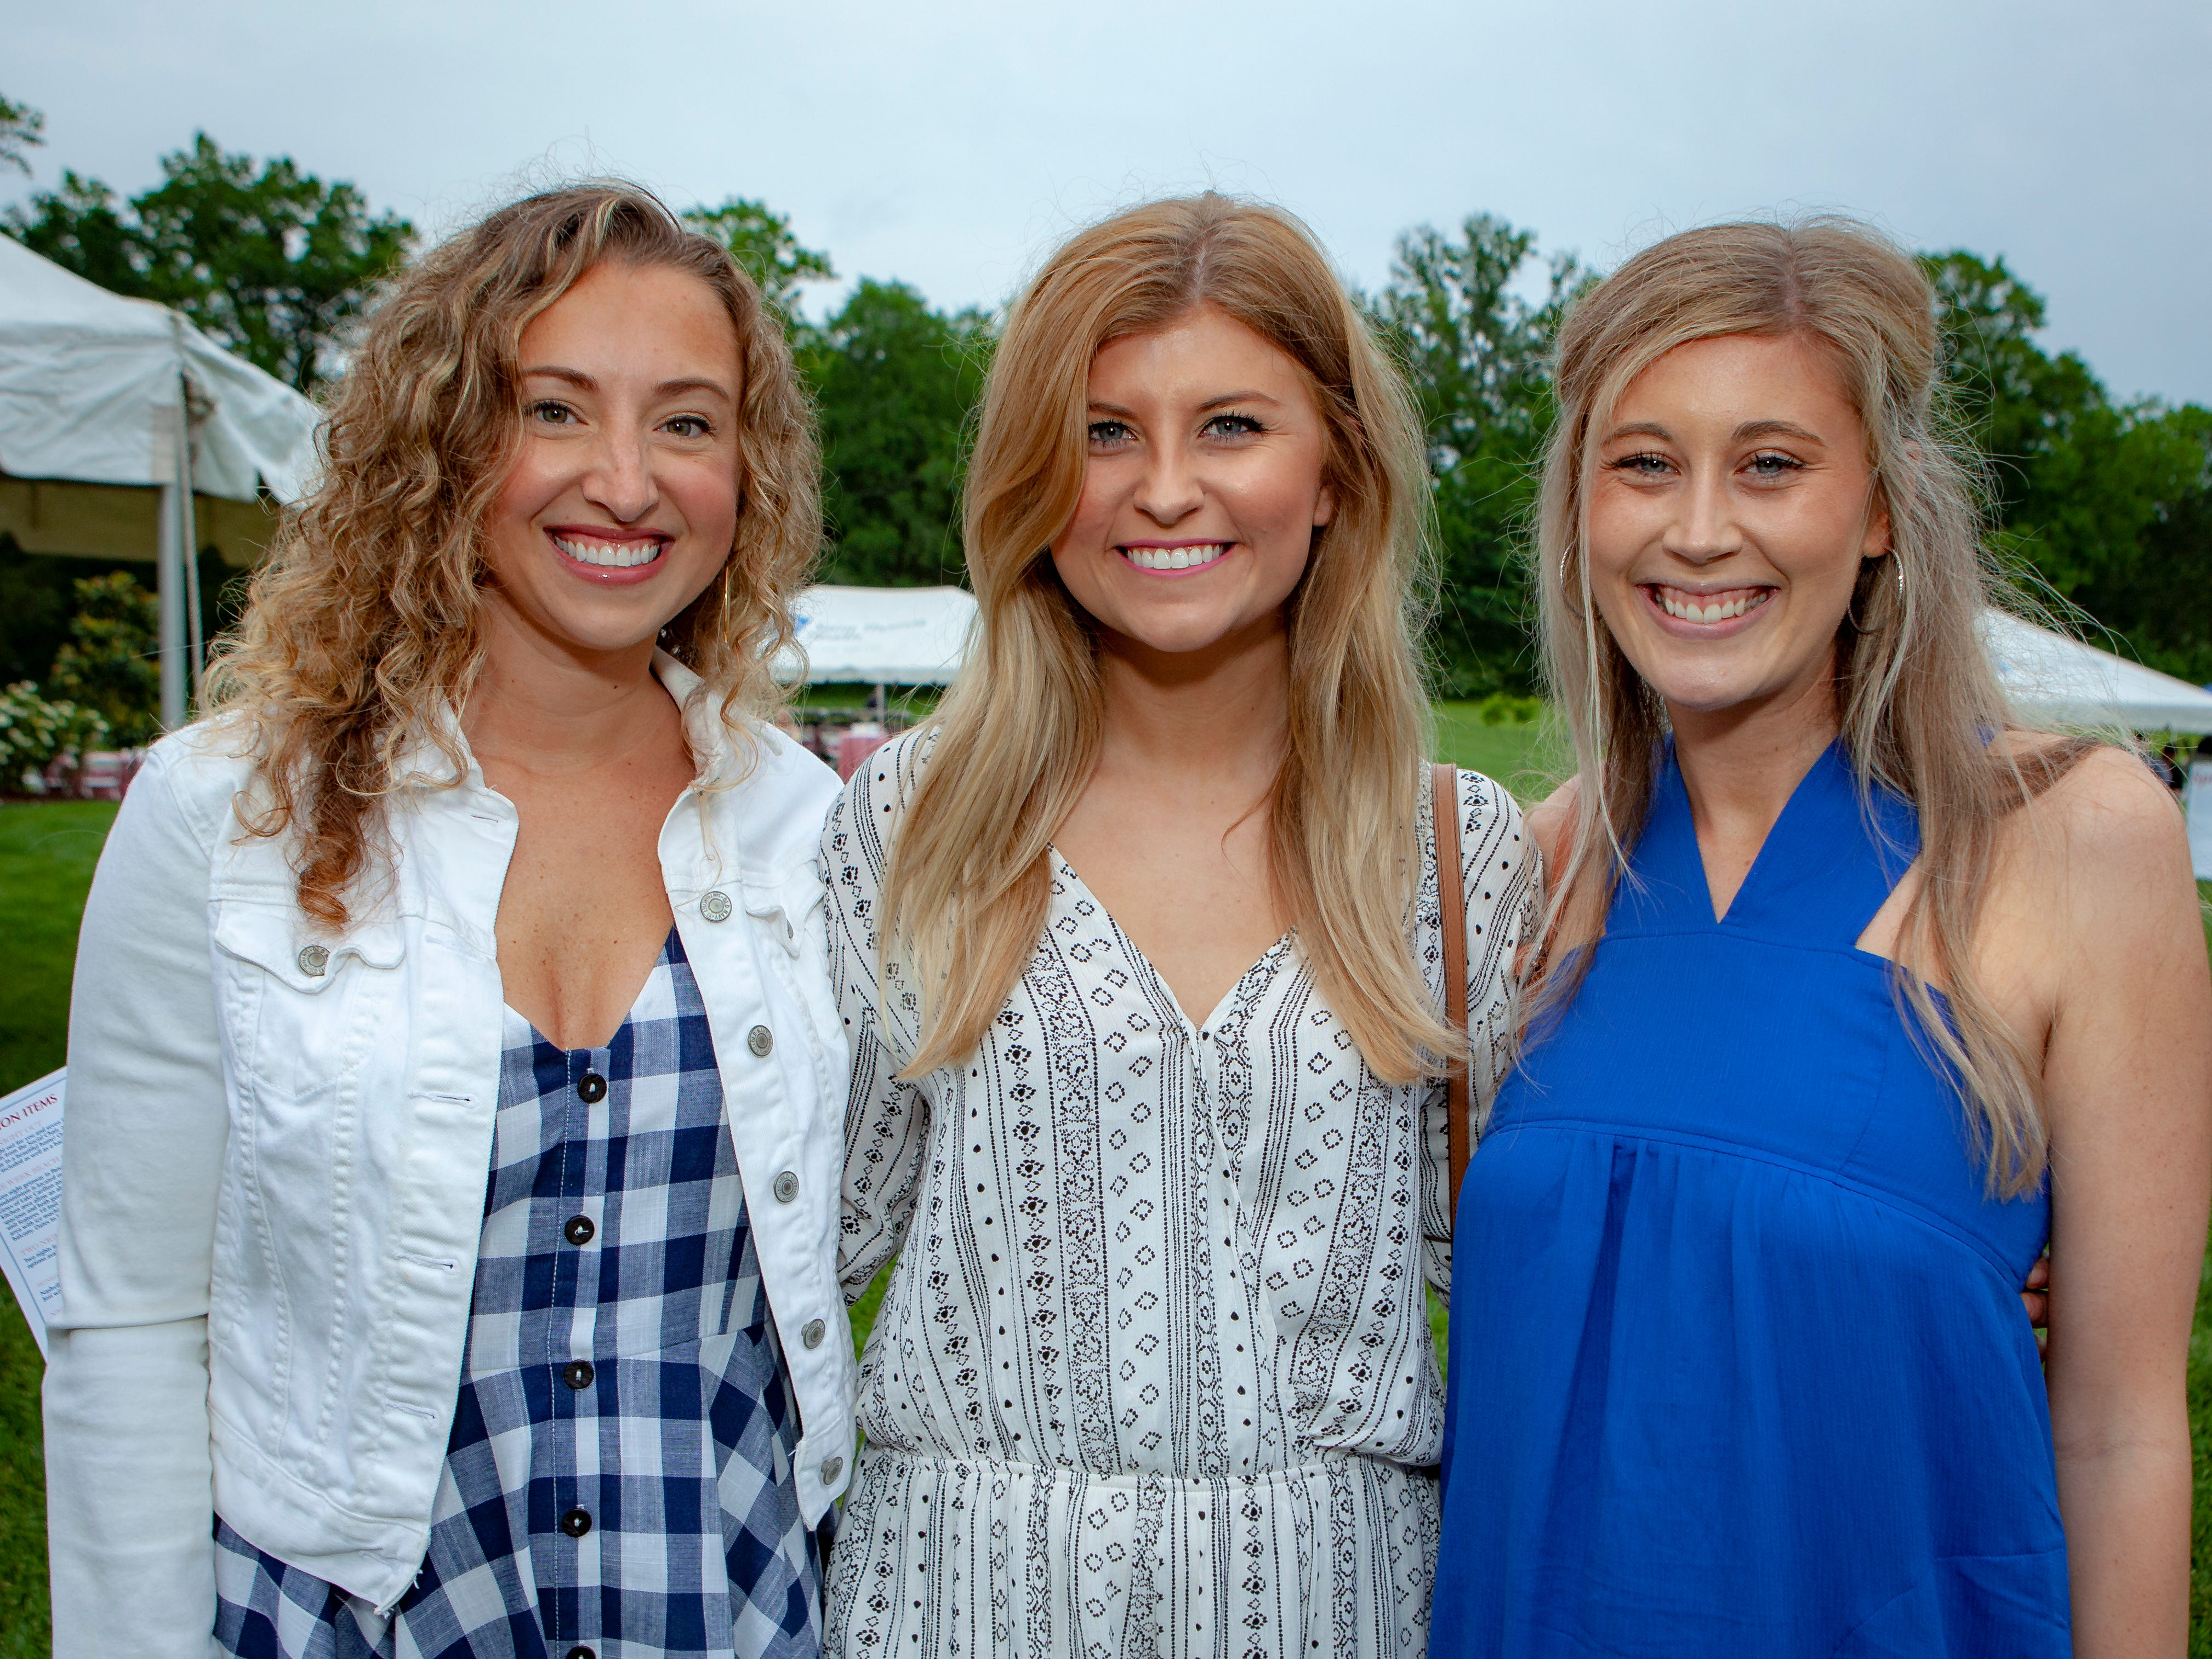 Marcie Rainey, Olivia Wright and Aubrey Grensing enjoyed a Cajun feast under the stars at United Way's Red, White and Bayou, held Friday, May 10, 2019 at the home of Jimmy & Nikkole Aho.